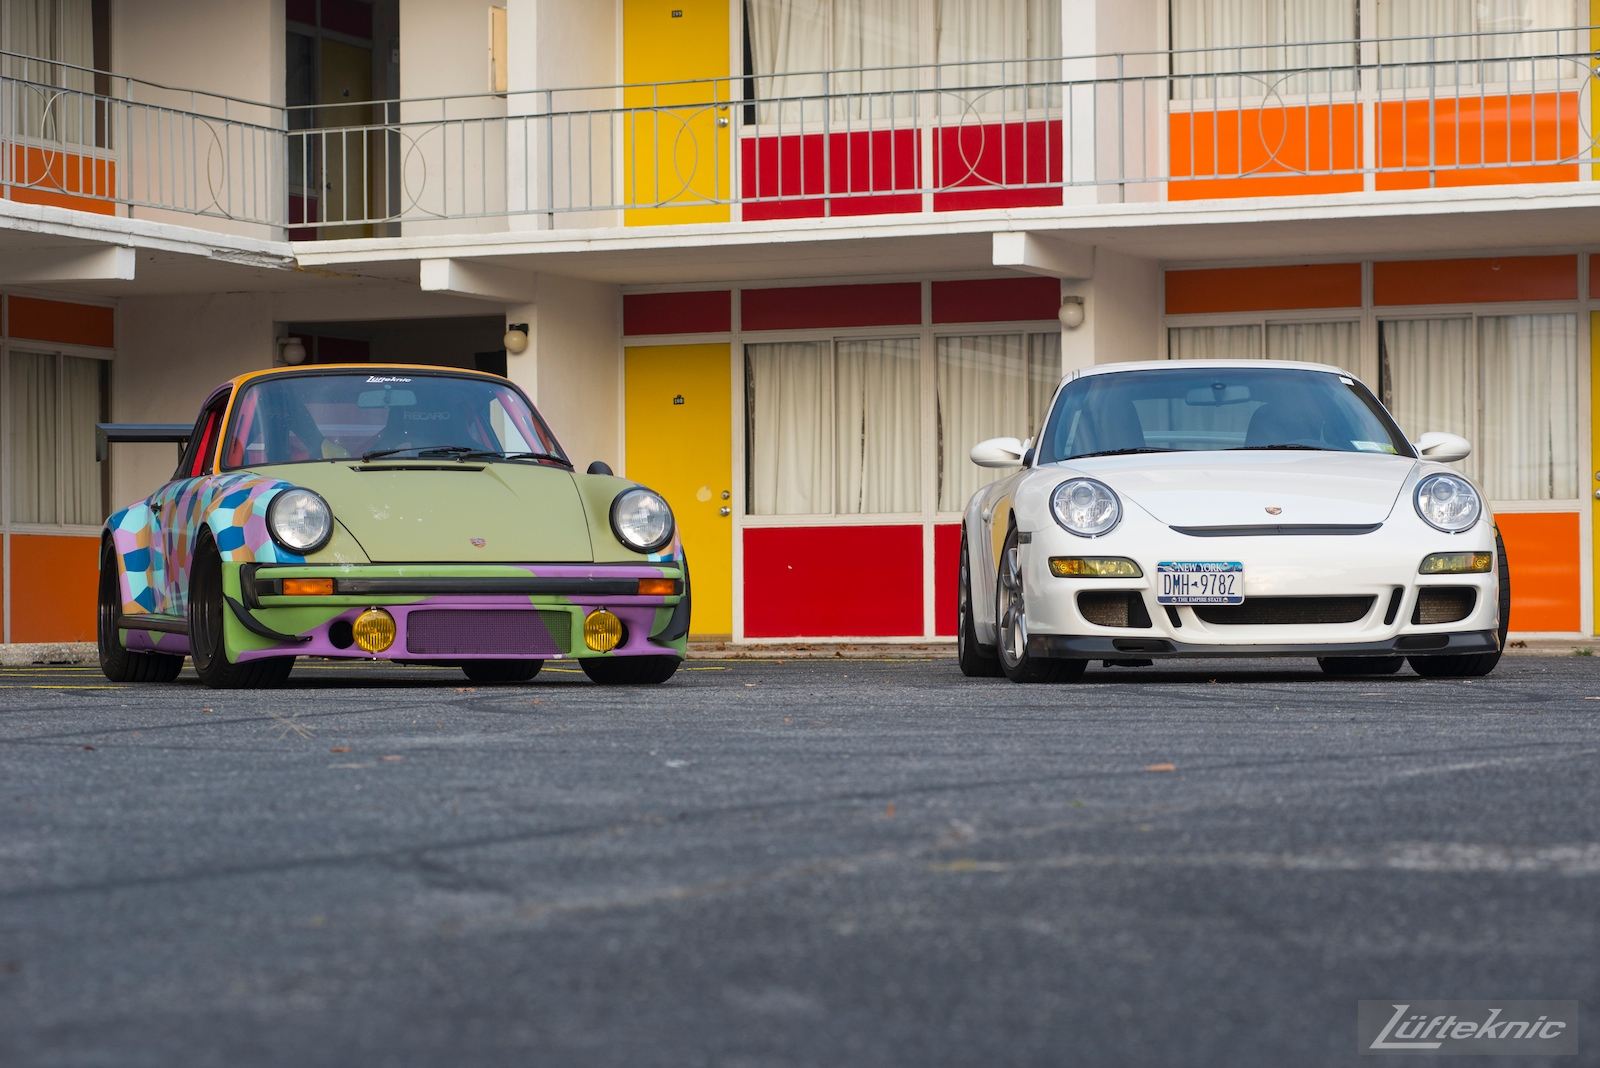 The Lüfteknic cars, including #projectstuka, porschebus and 997 GT3 pose in front of a colorful hotel.